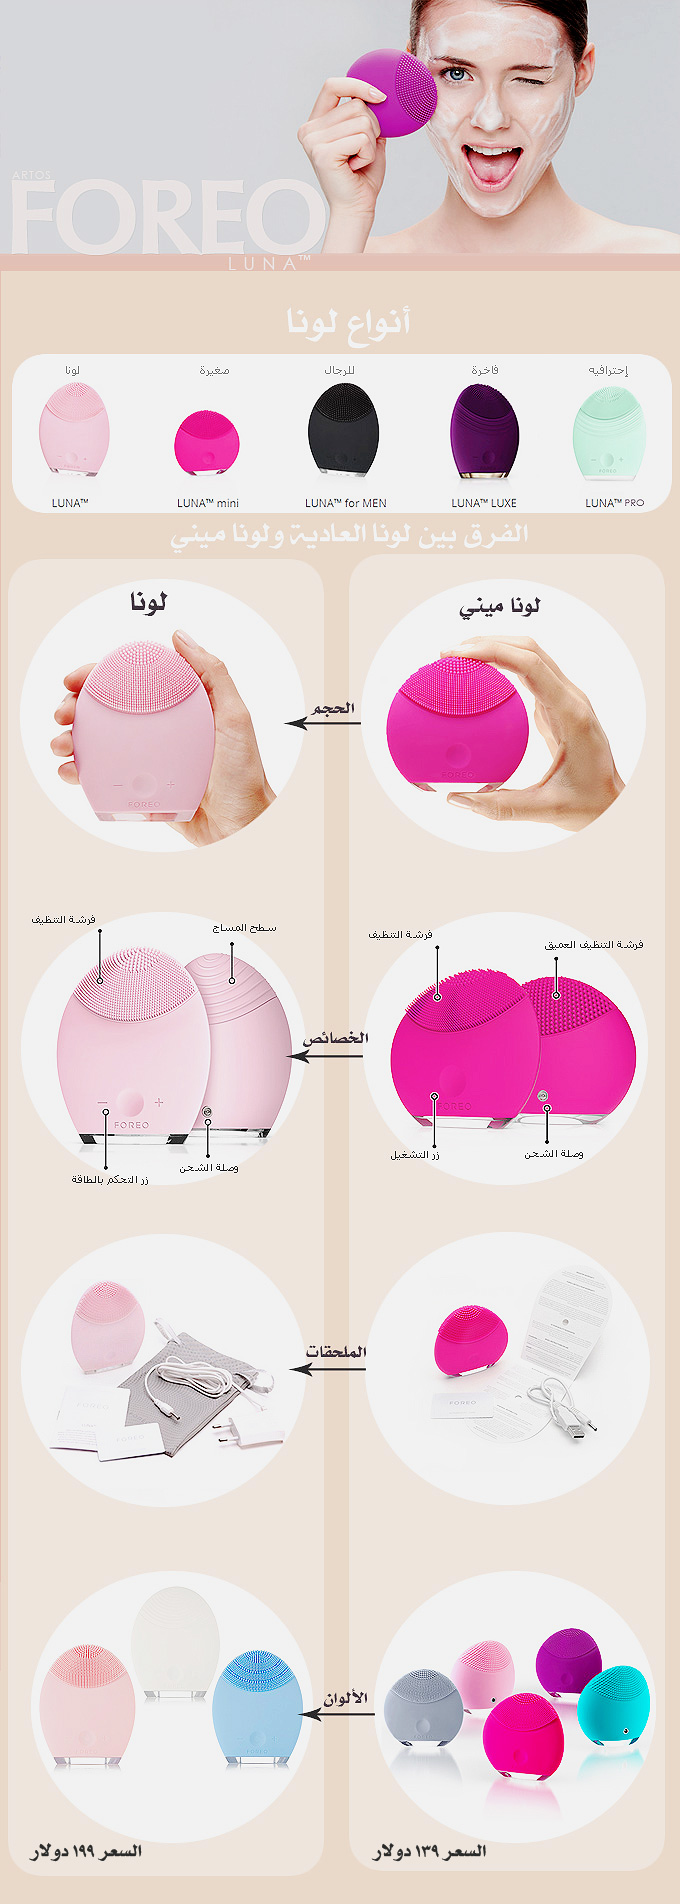 foreo-color